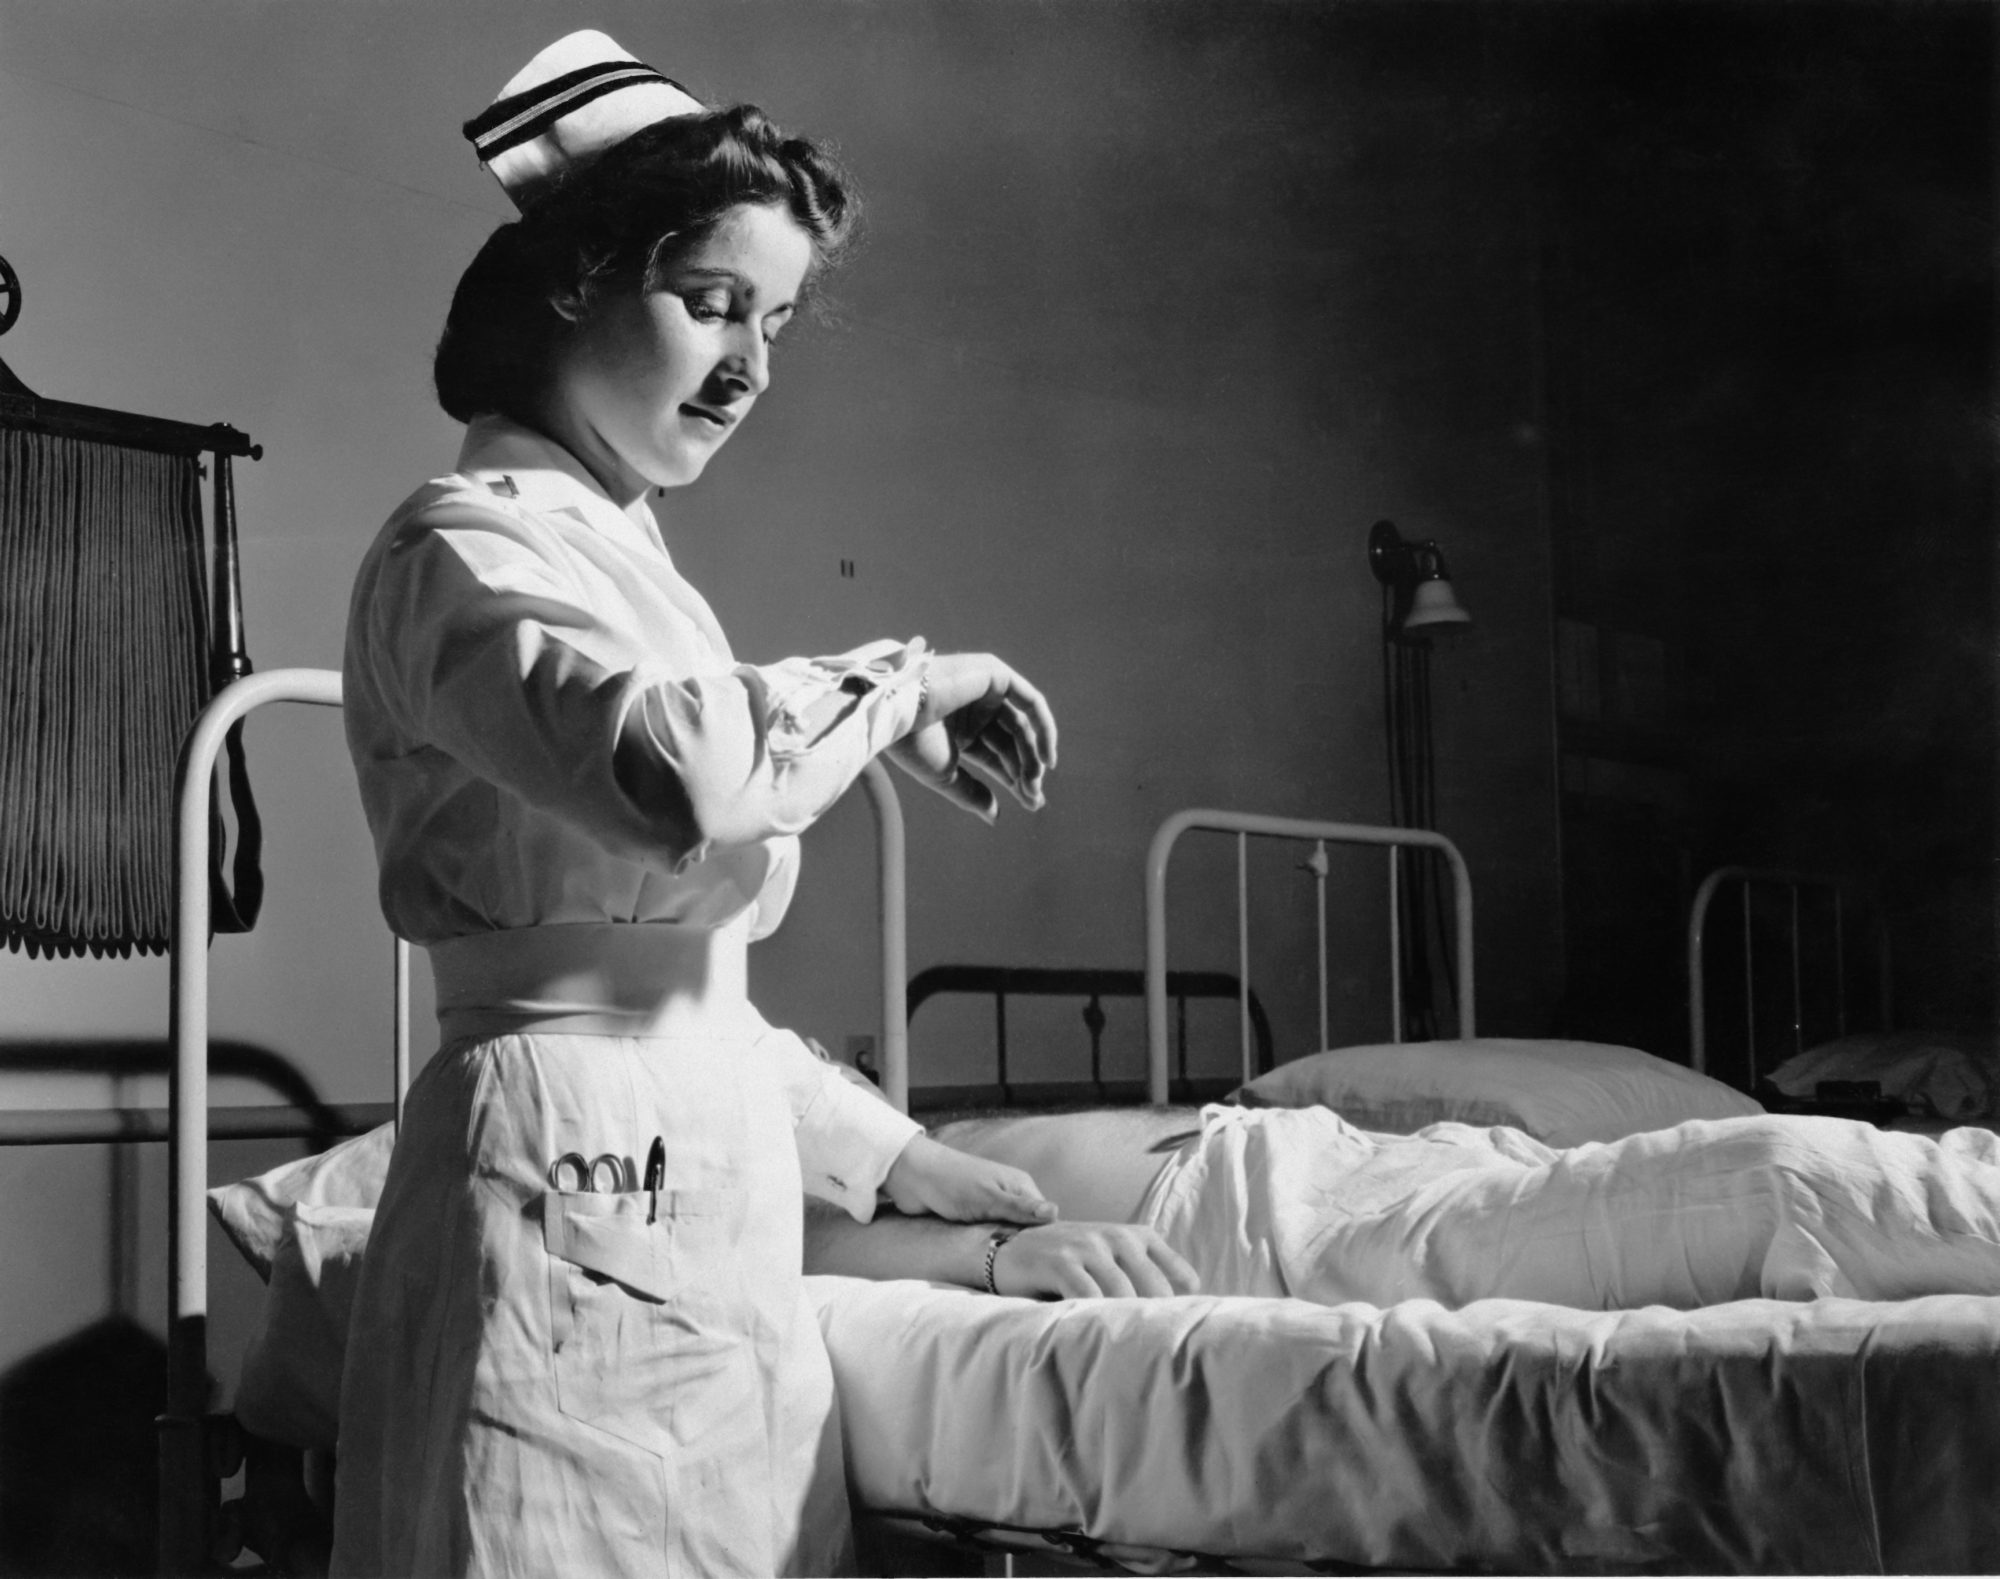 1950s nurse taking pulse of patient